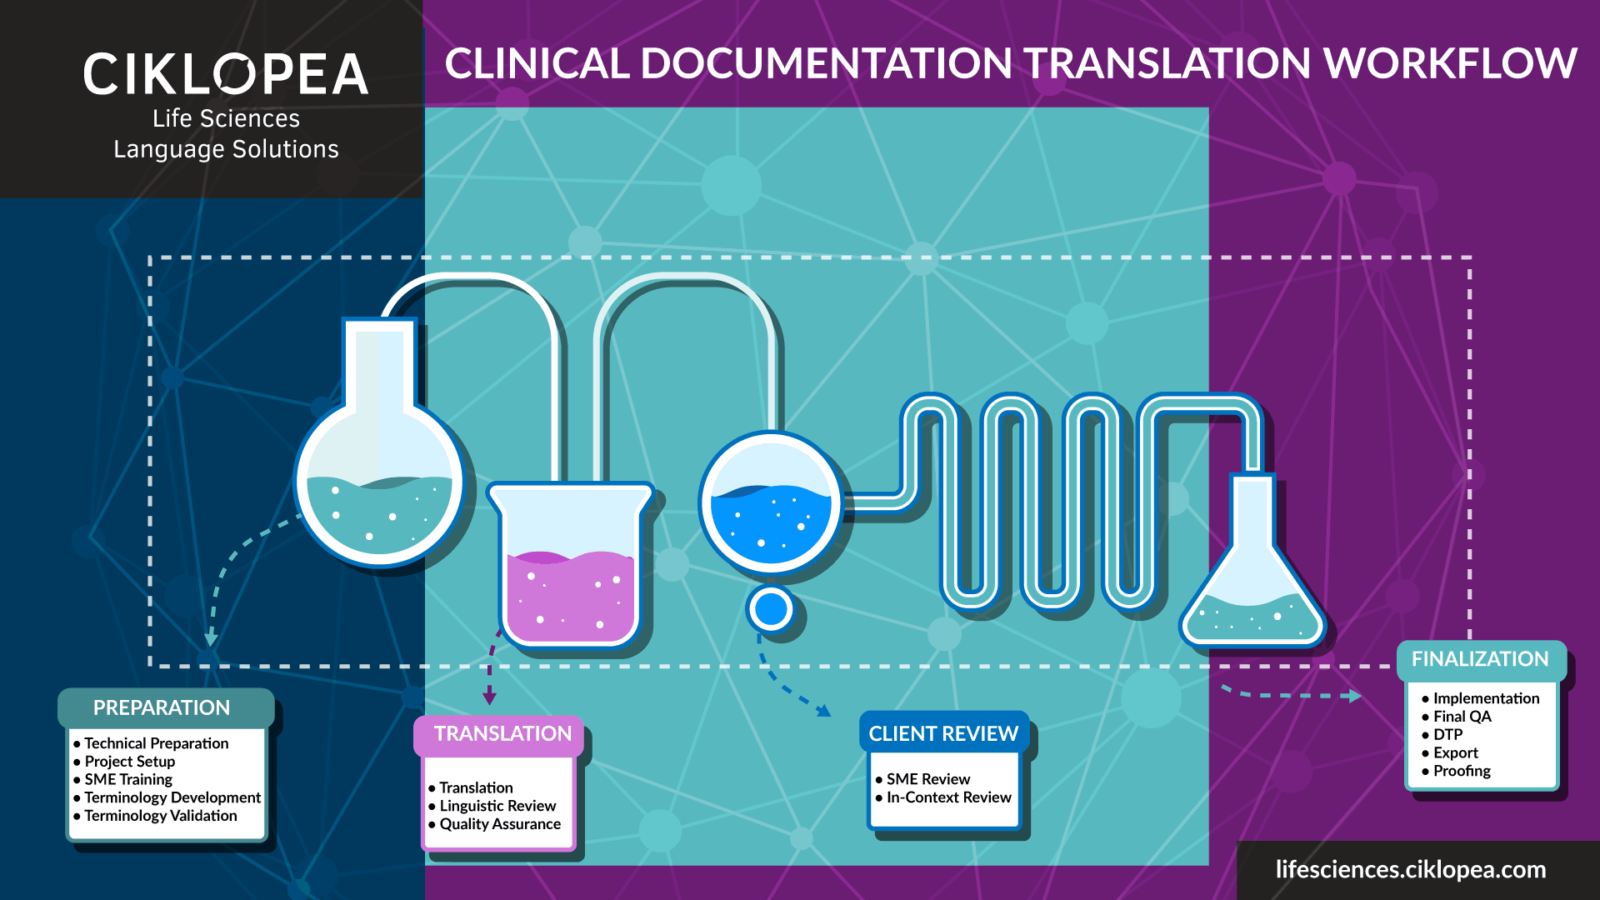 Clinical Documentation Translation Workflow